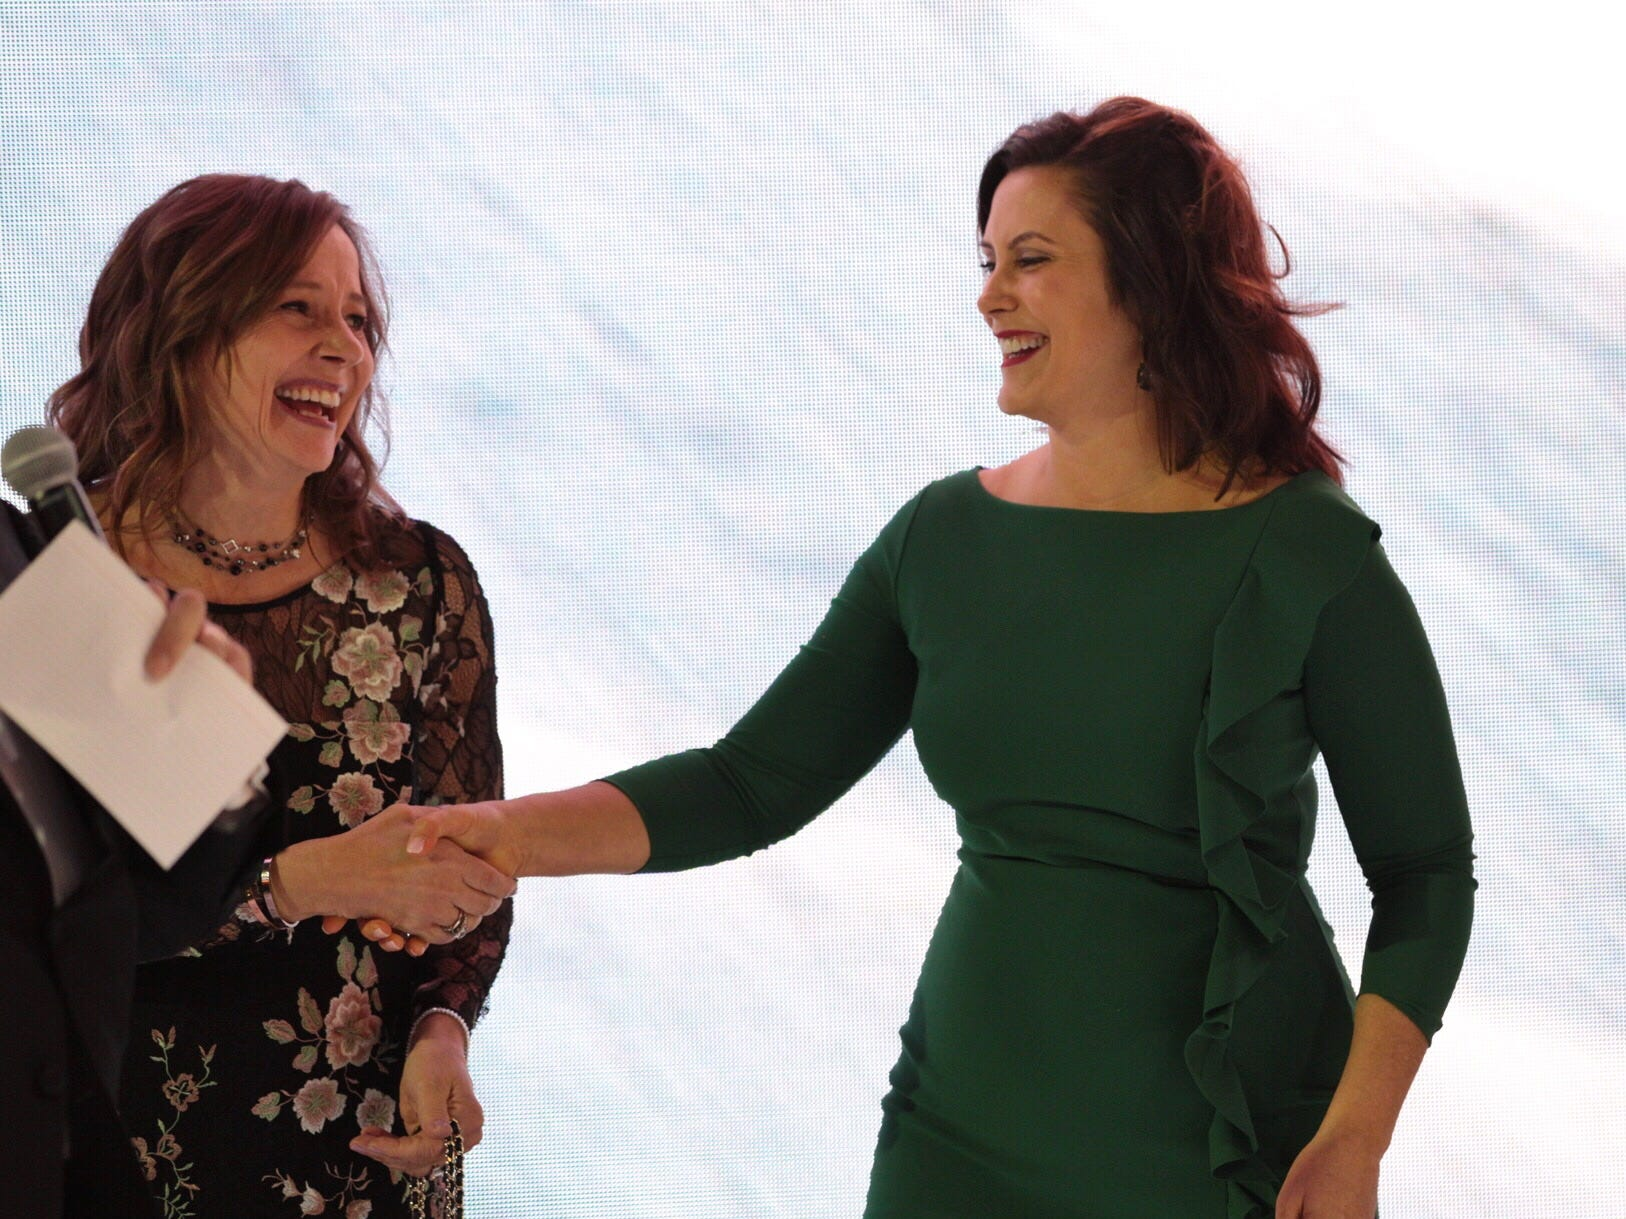 Governor Gretchen Whitmer and General Motors CEO Mary Barra shake hands while talking on the radio during the 2019 North American International Auto Show Charity Preview at Cobo Center in Detroit on Friday, January 18, 2019.